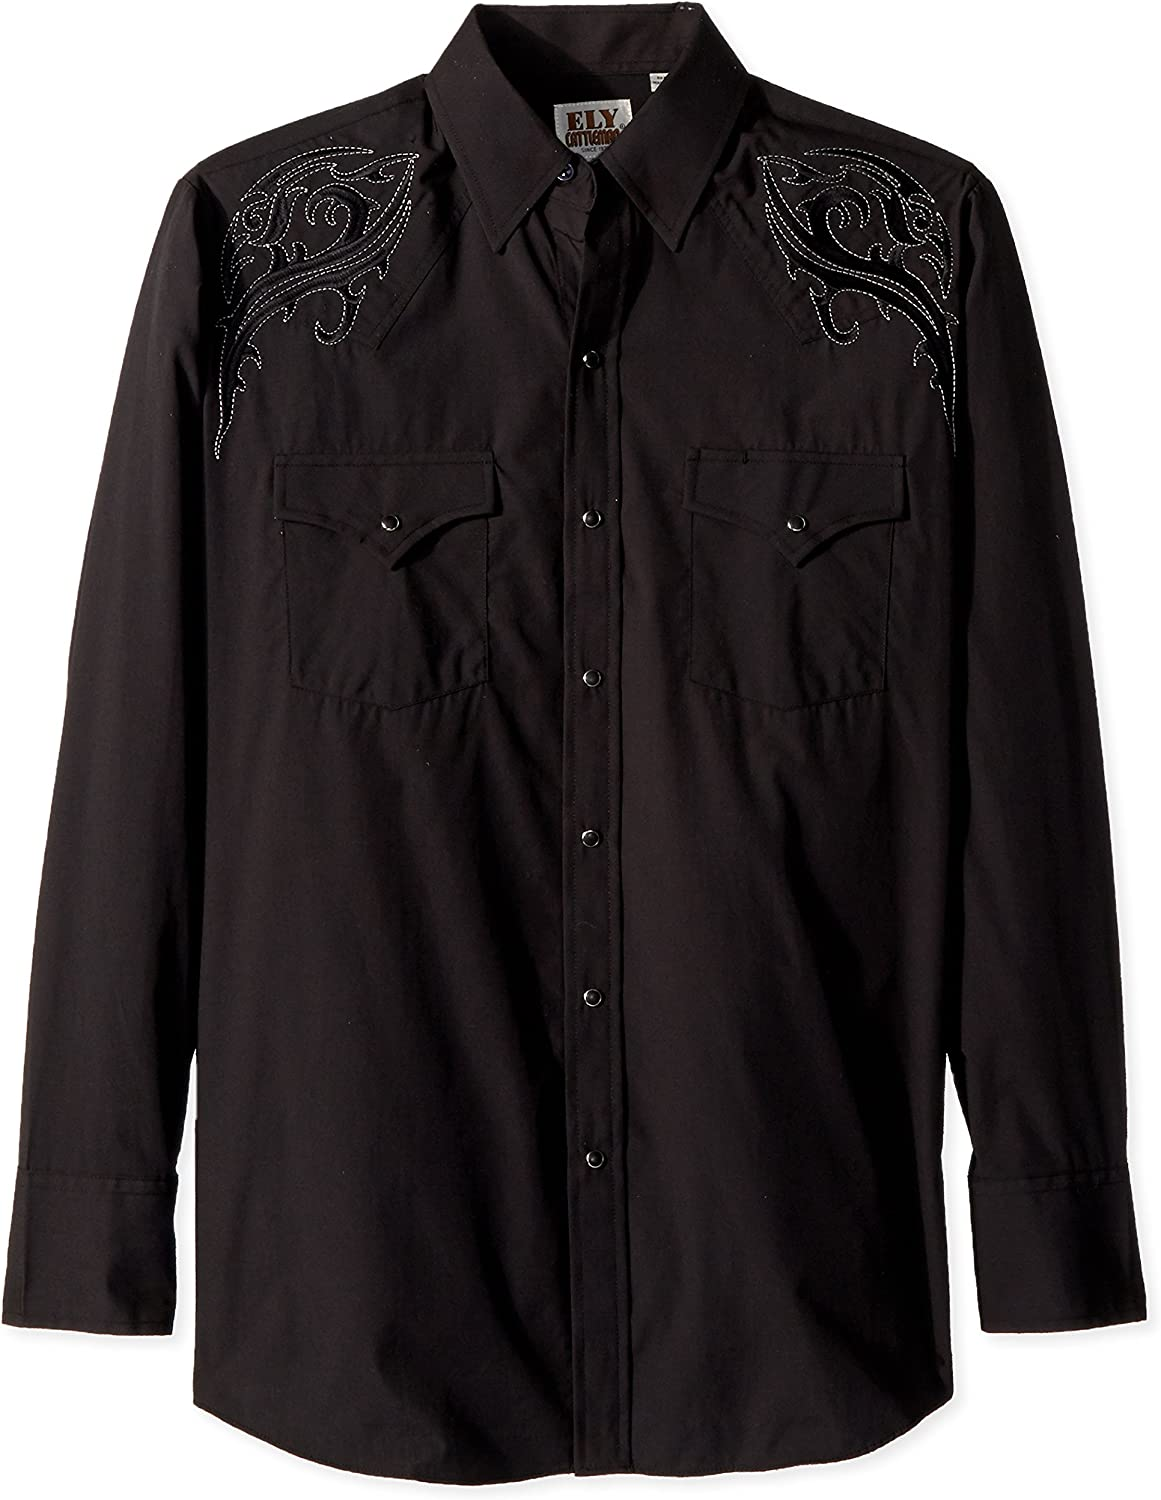 ELY CATTLEMAN Men's Long Sleeve Solid Shirt with Scroll Tonal Embroidery